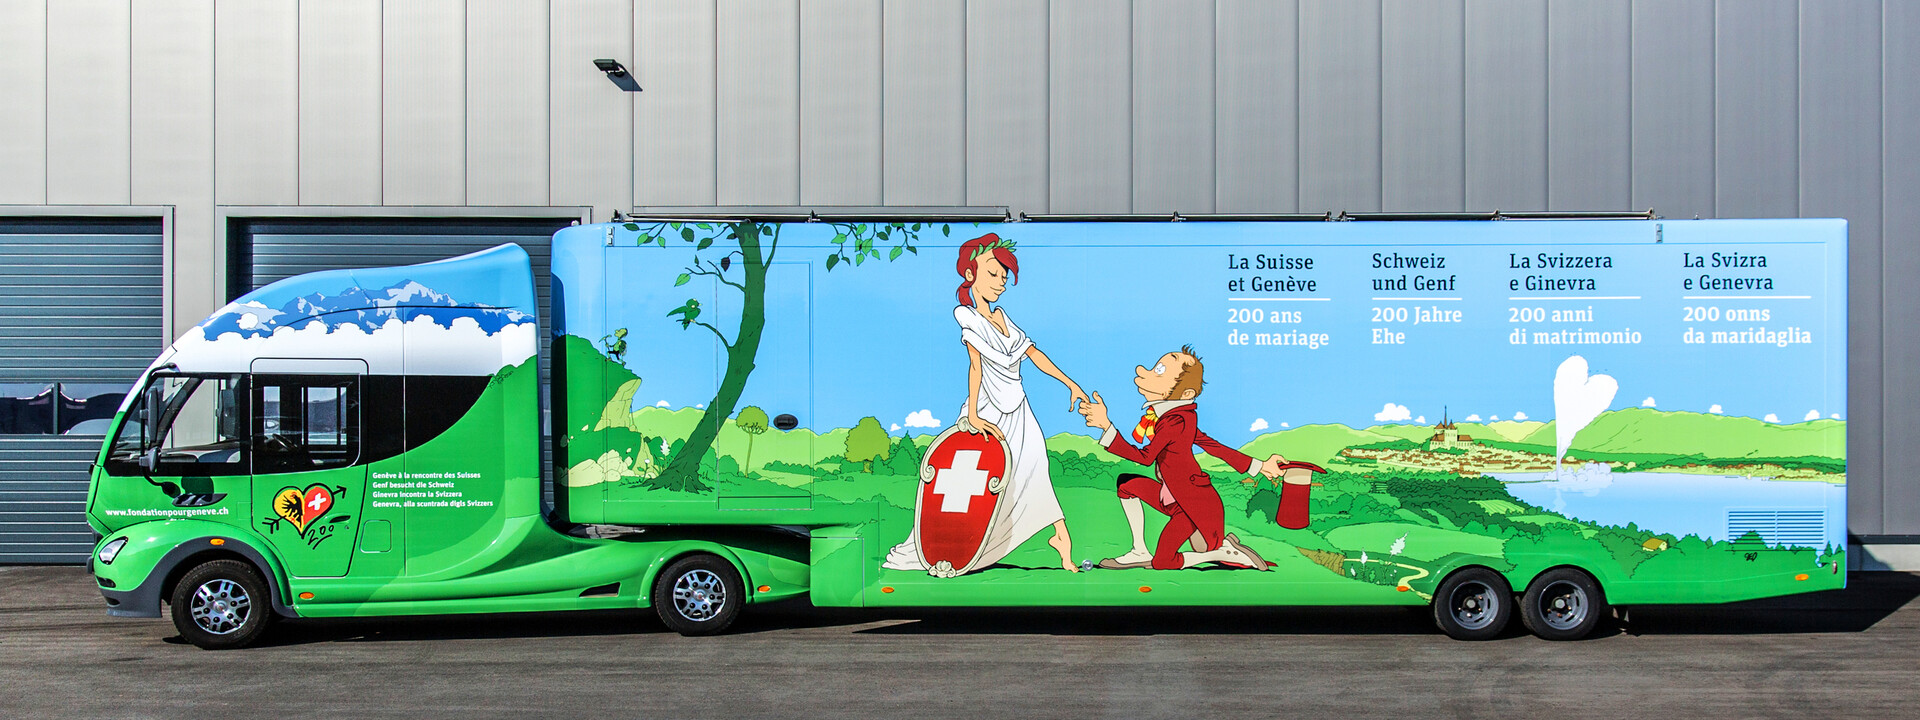 Fondation Geneve Schweiz Showtruck